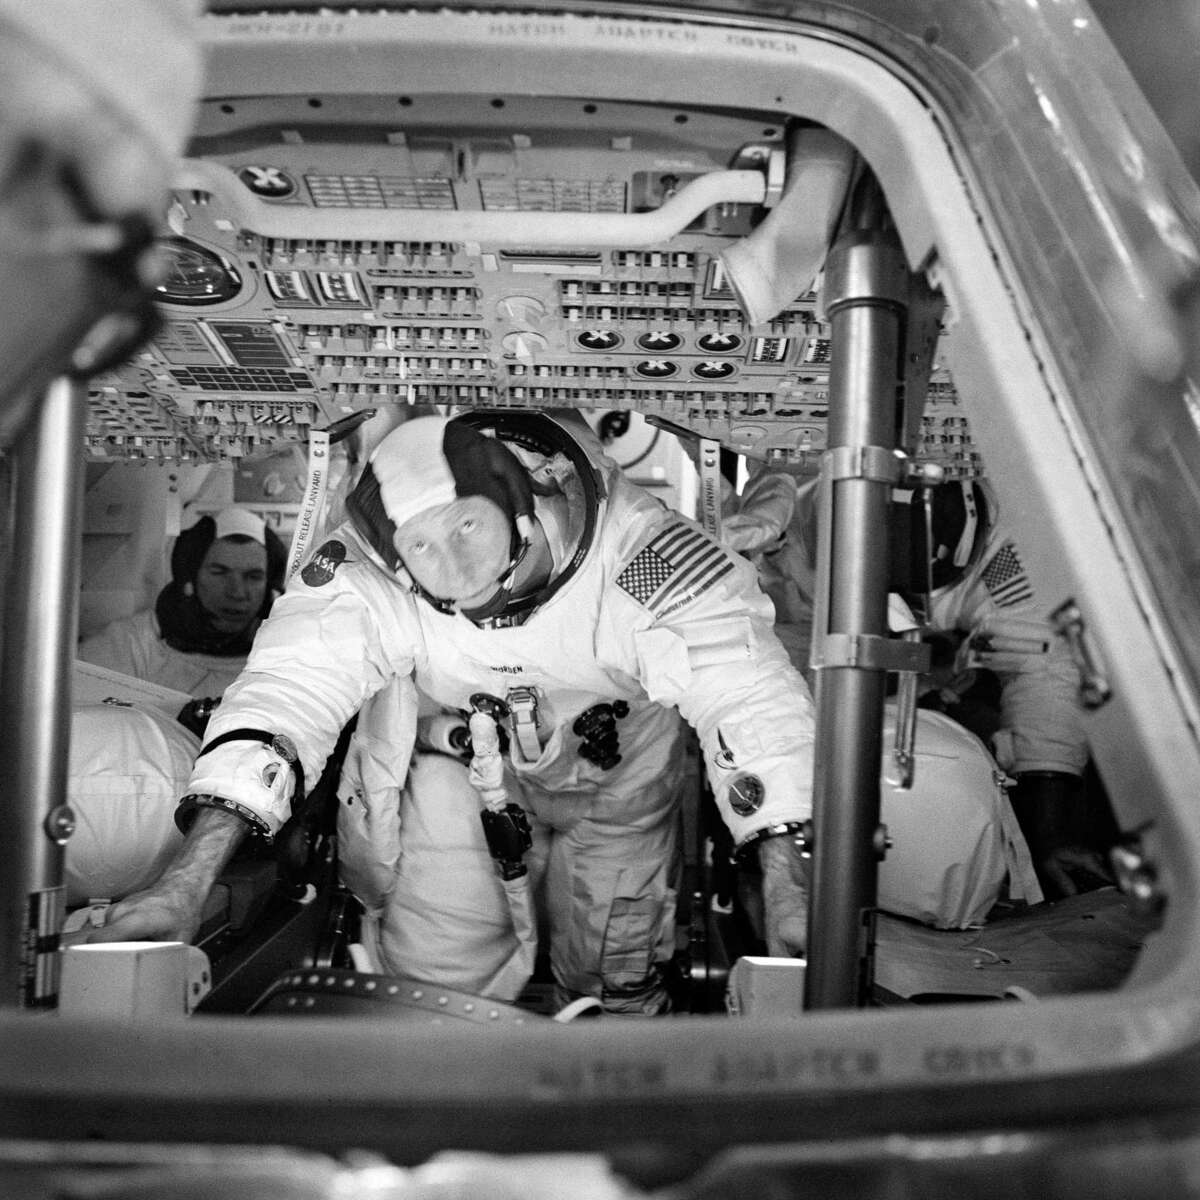 The three Apollo 15 crew members can be seen inside the Command Module on March 26, 1971 during simulation training at the Kennedy Space Center. Astronaut David R. Scott, commander, is in the background to the left. Astronaut Alfred M. Worden, center foreground, is the command module pilot. Out of view, to the right background, is astronaut James B. Irwin, lunar module pilot.